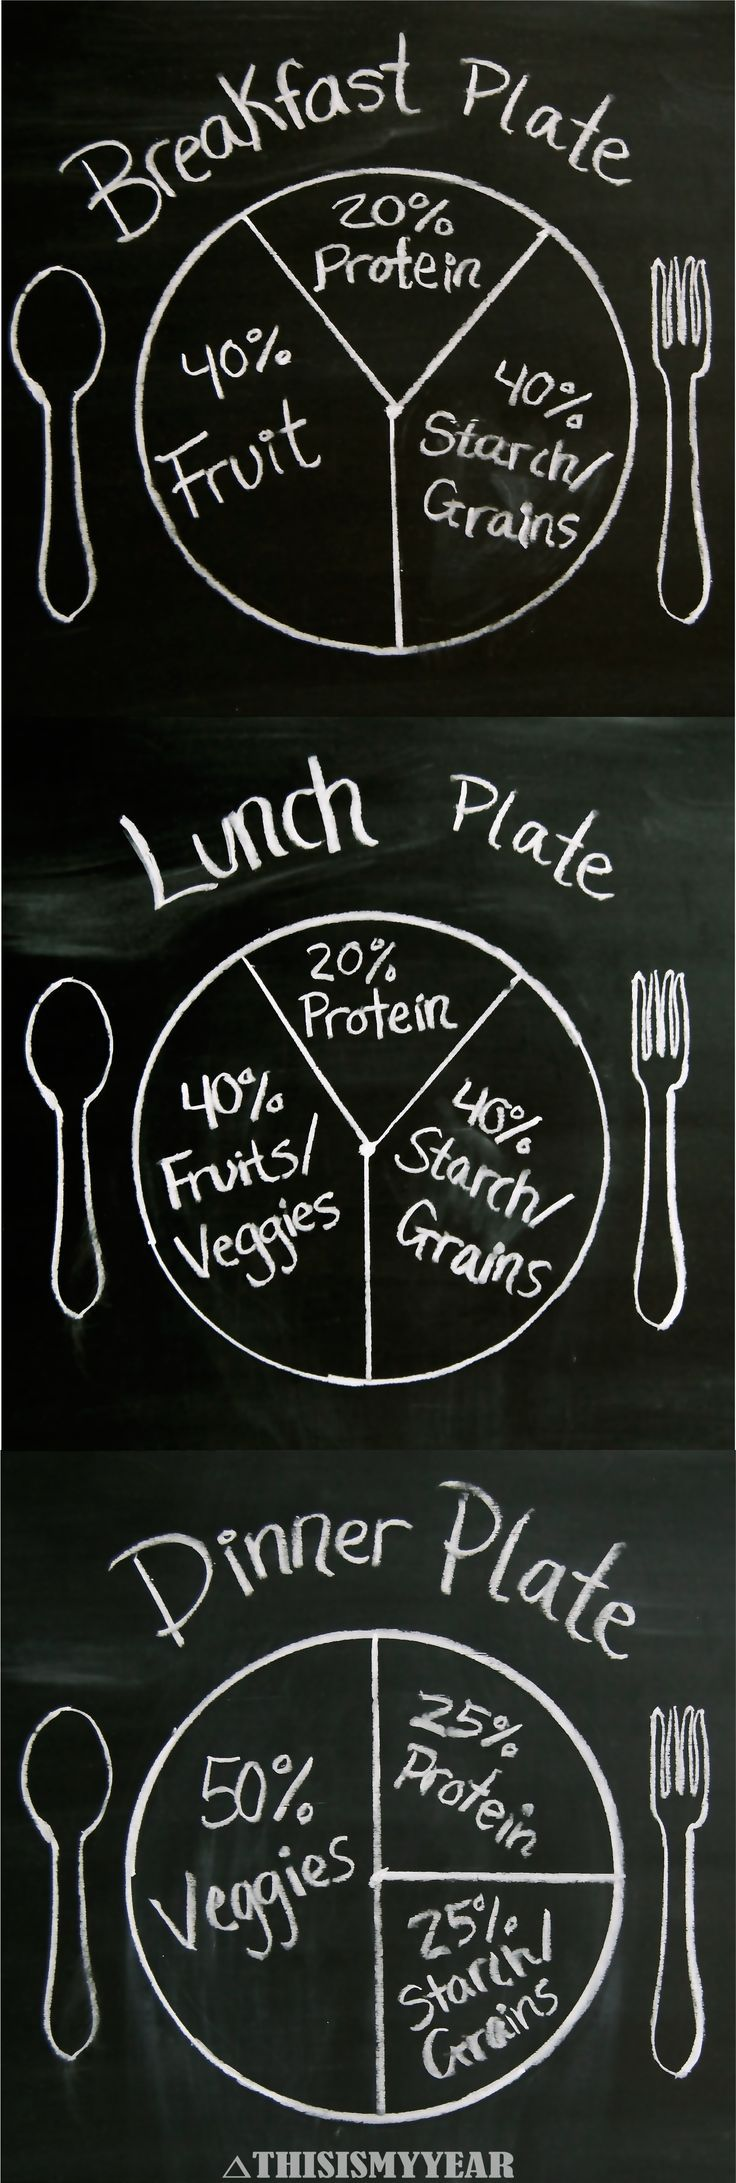 Plant Based Diet Plate Portions. A great guideline to use when fixing your plate. /search/?q=%23thisismyyear&rs=hashtag /search/?q=%23plantbased&rs=hashtag